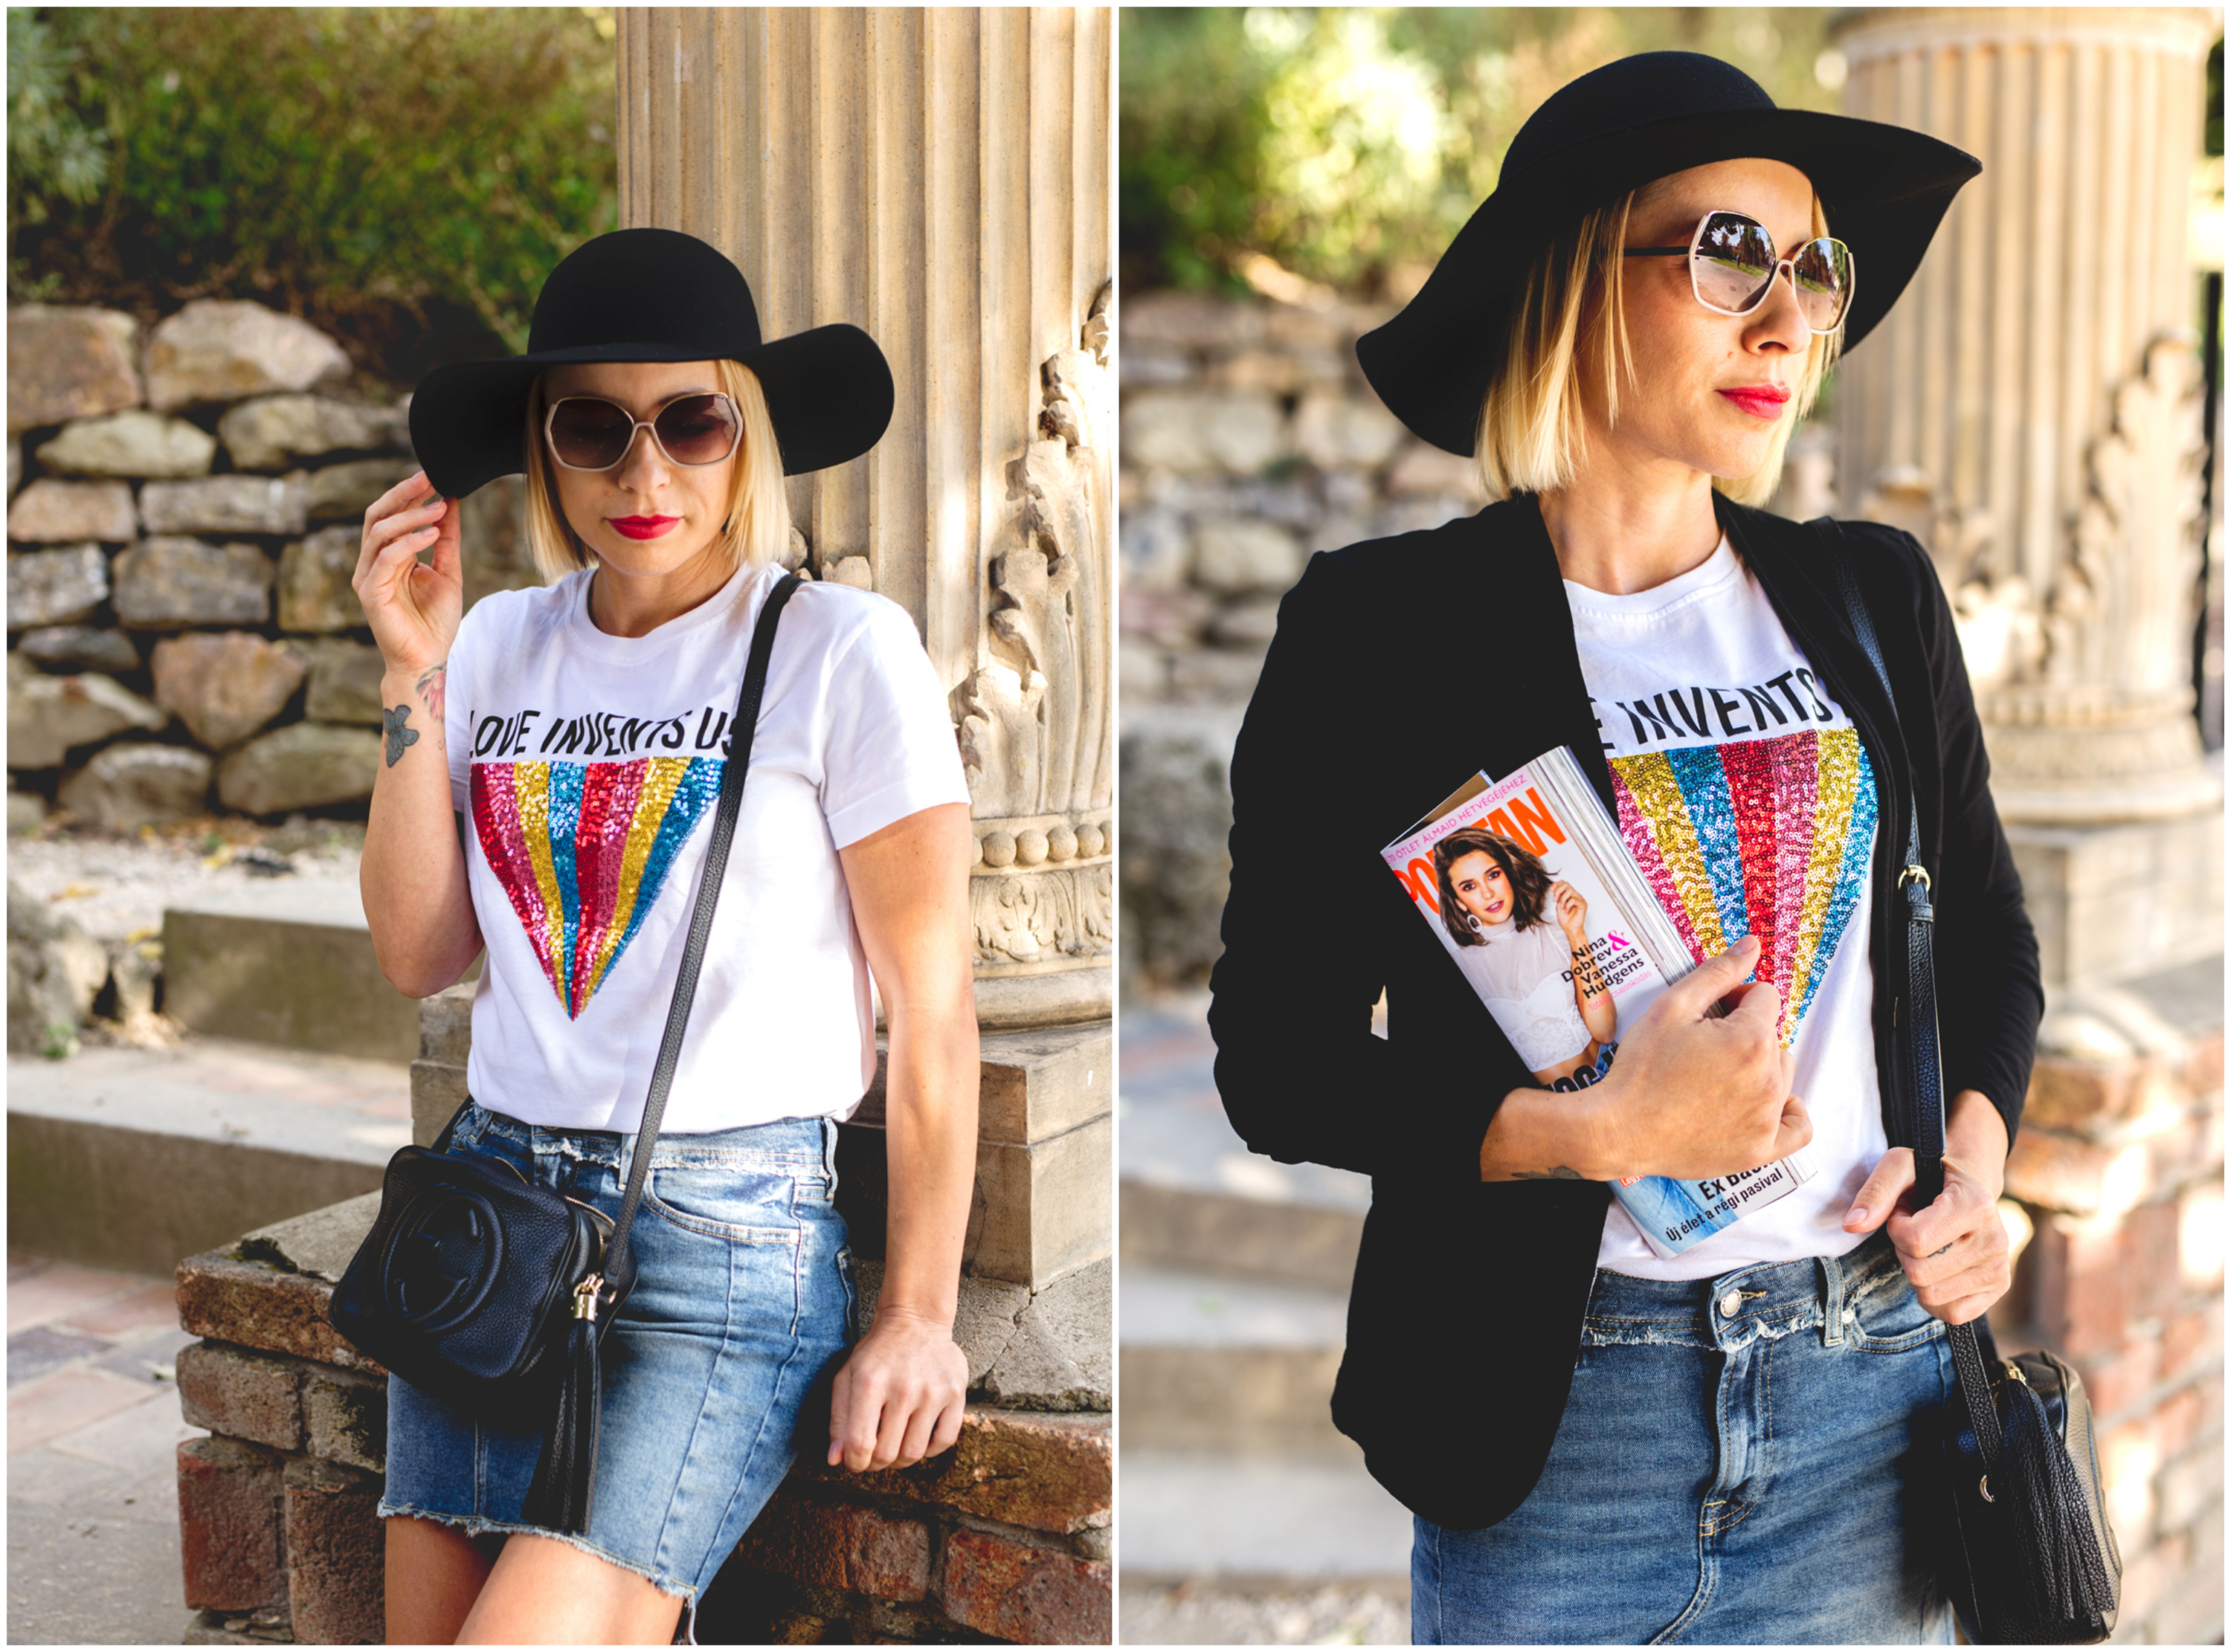 outfit2-collage.jpg